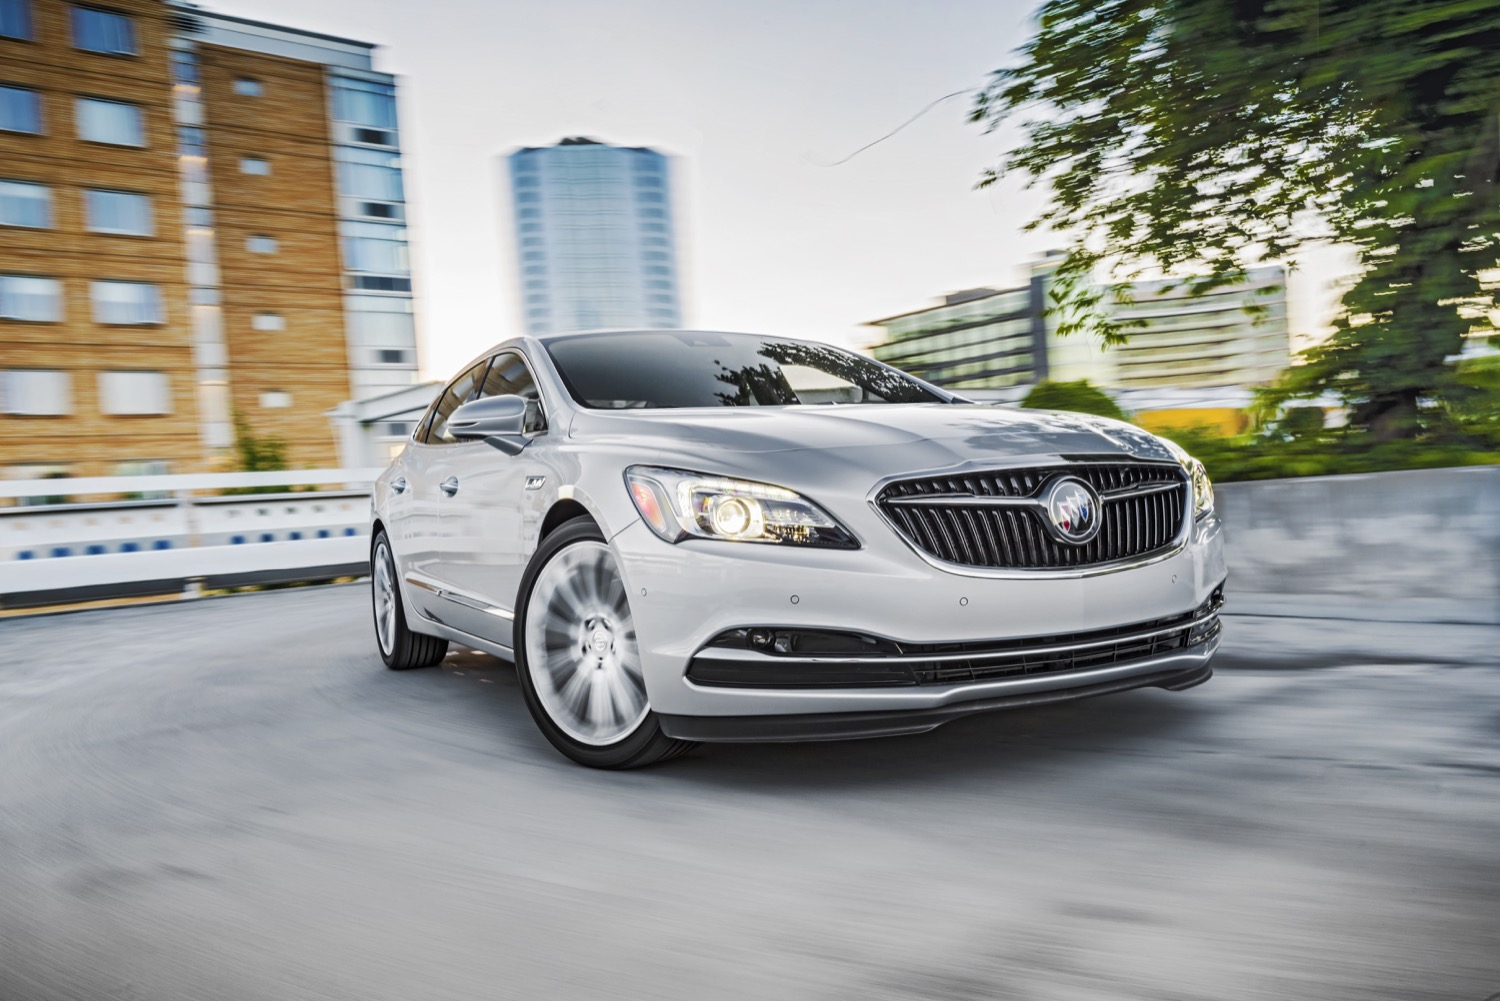 Buick Lacrosse Discount Totals $9,000 February 2020 | Gm New 2022 Buick Lacrosse Mpg, Engine, Price